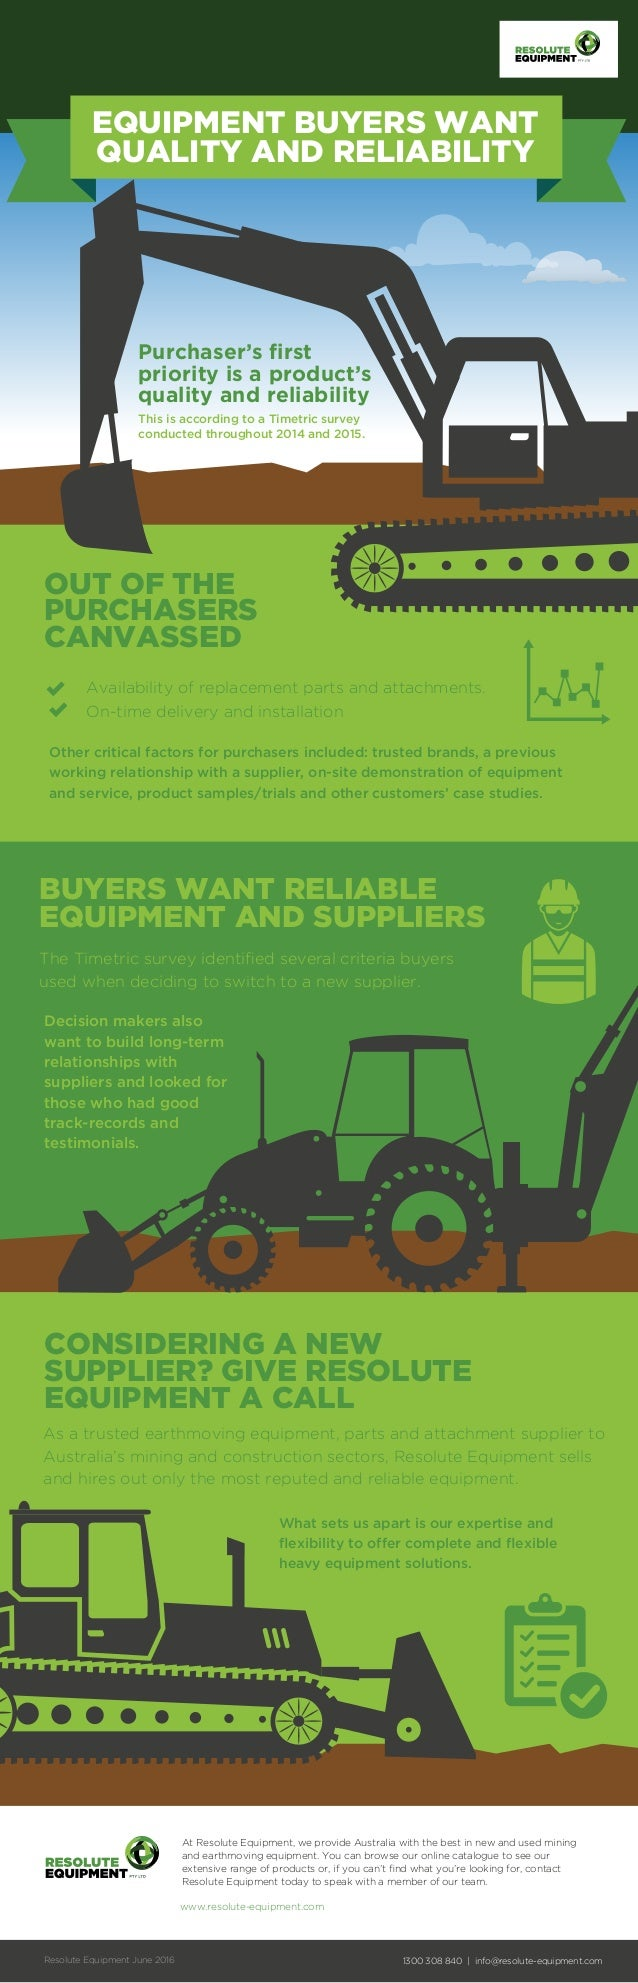 OUT OF THE PURCHASERS CANVASSED Other critical factors for purchasers included: trusted brands, a previous working relatio...